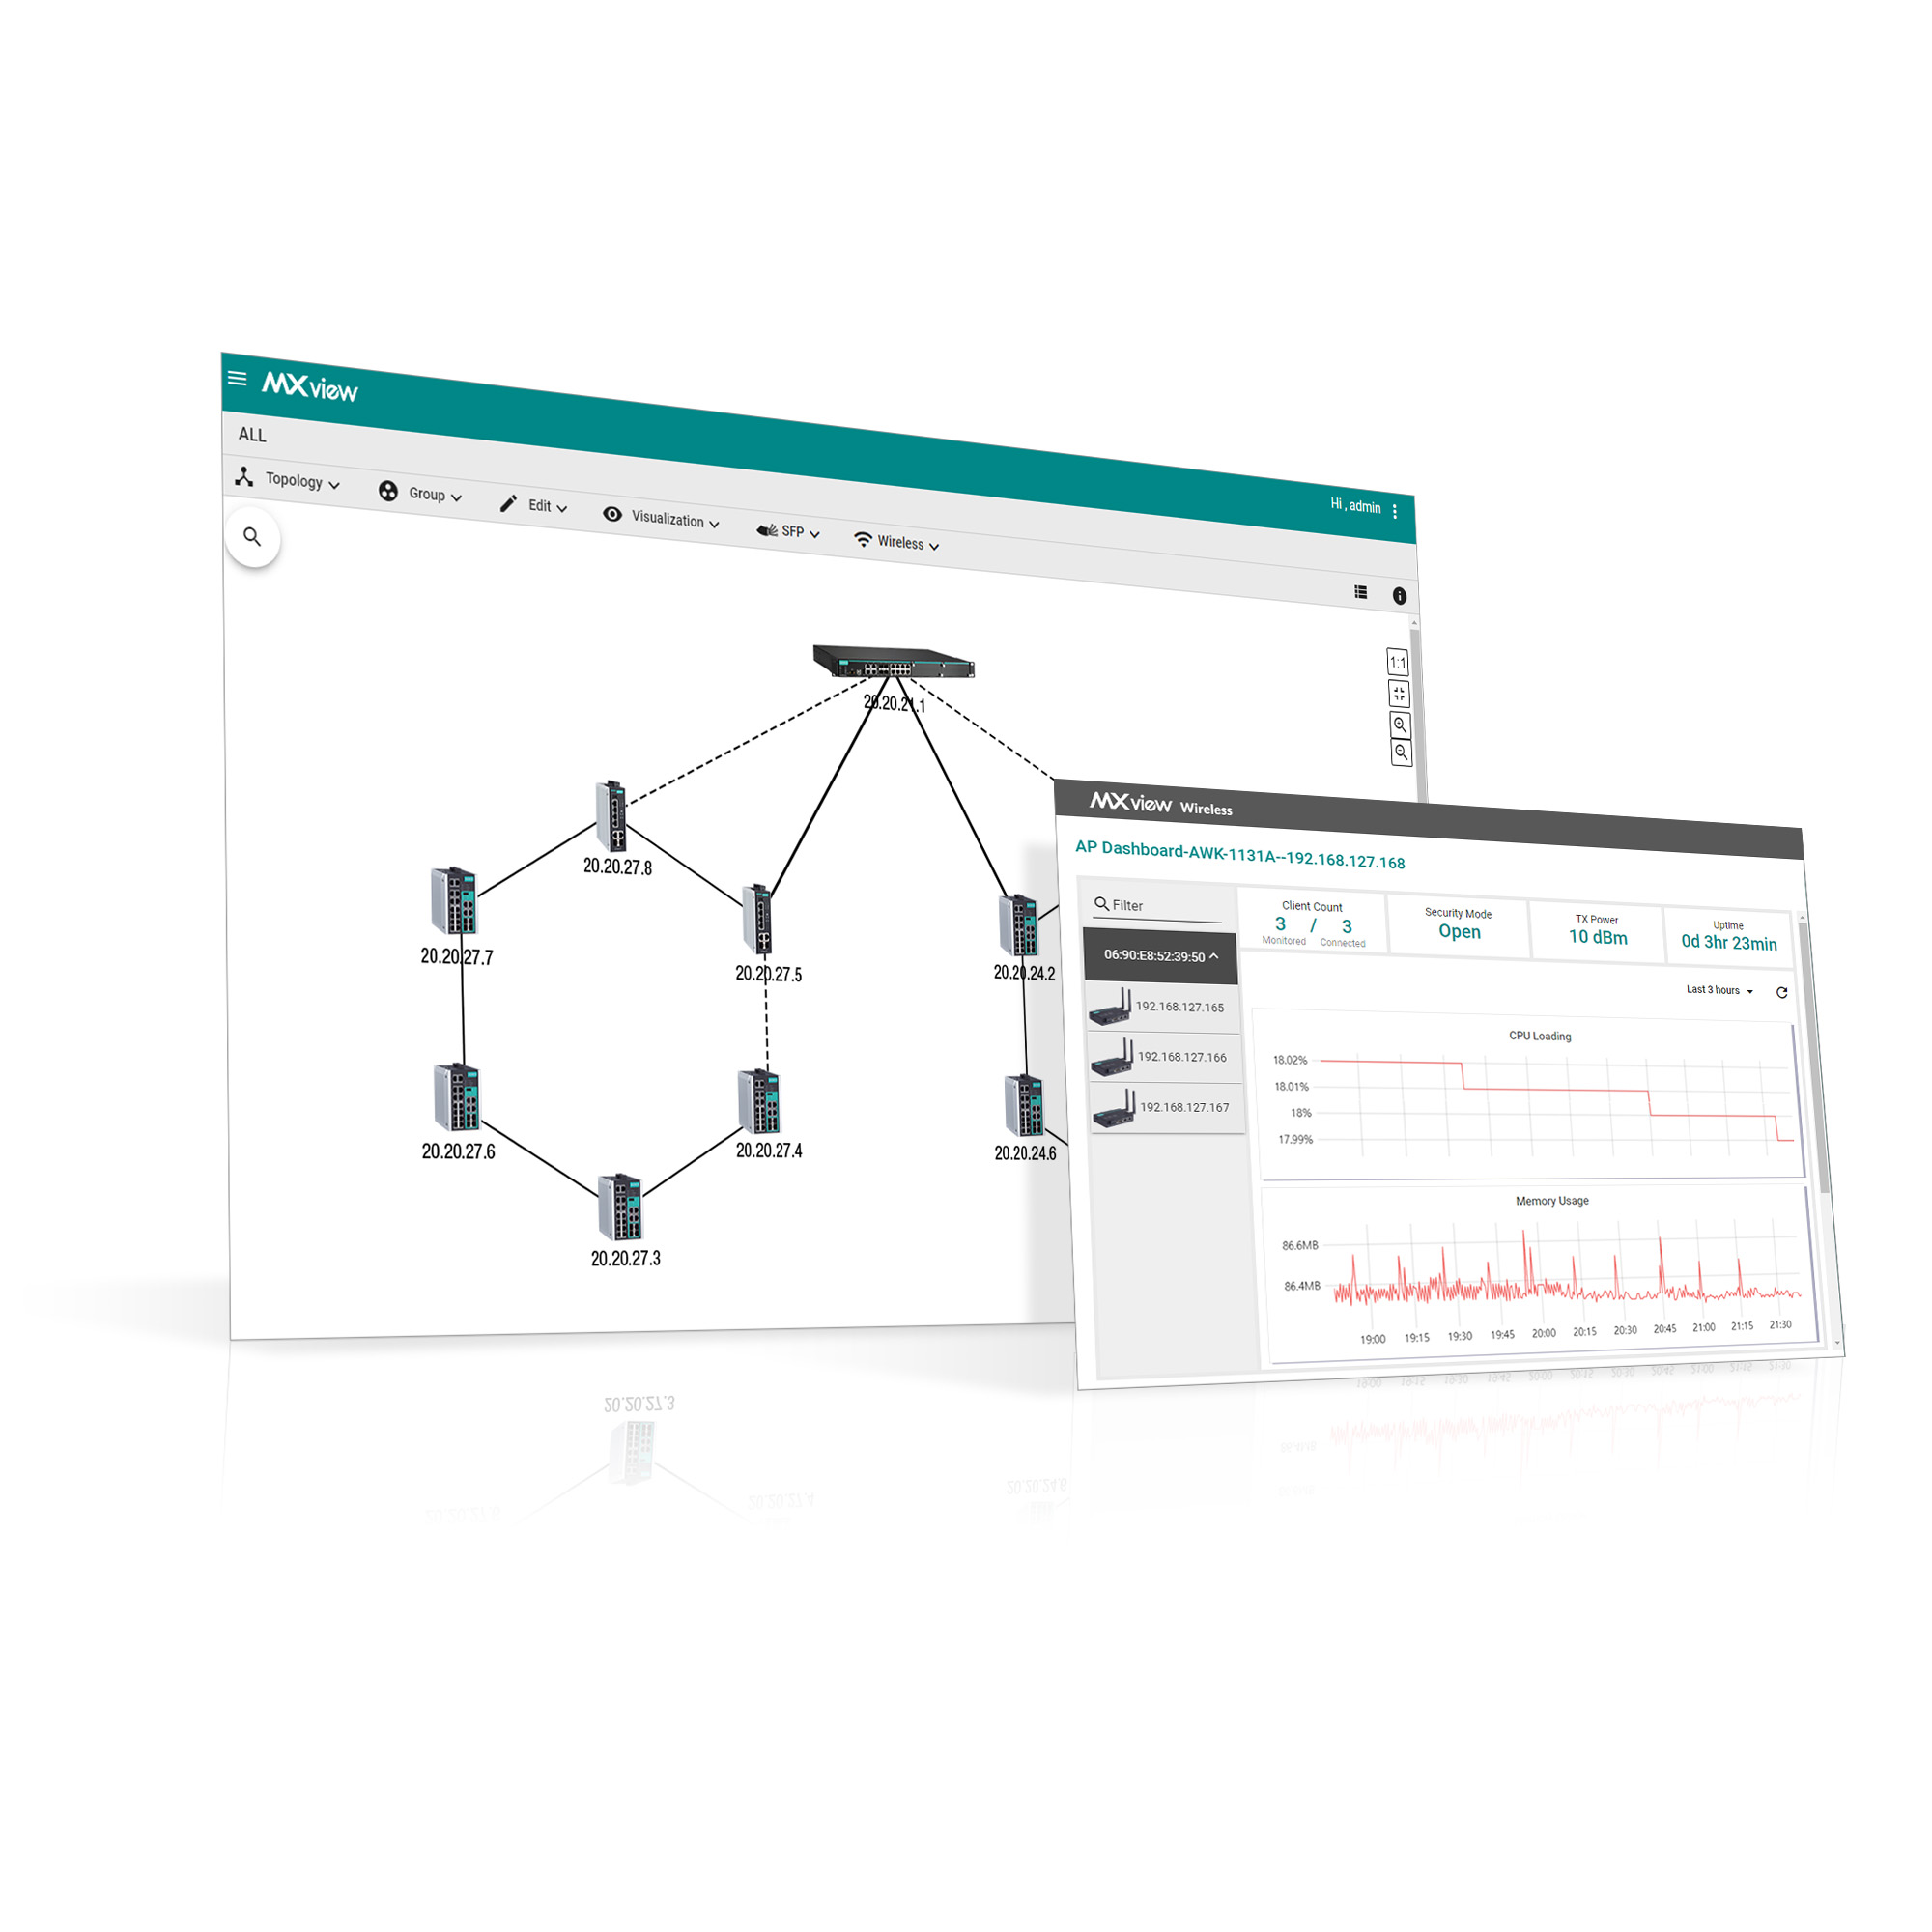 MXview Series - Network Management Software   MOXA